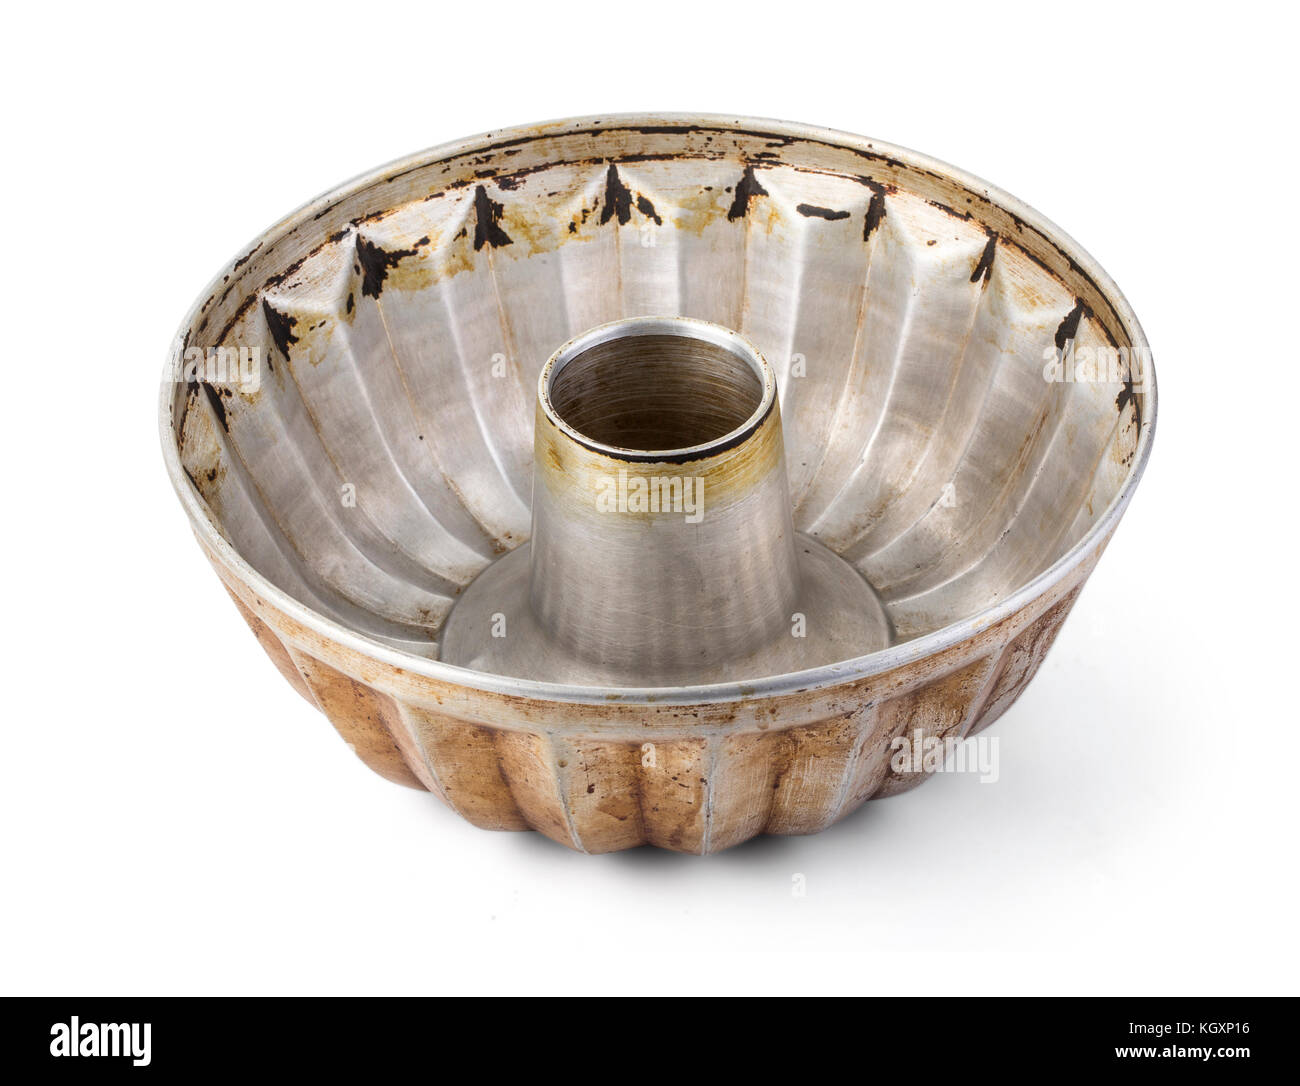 Old fluted tube baking pan isolated on white with clipping path - Stock Image